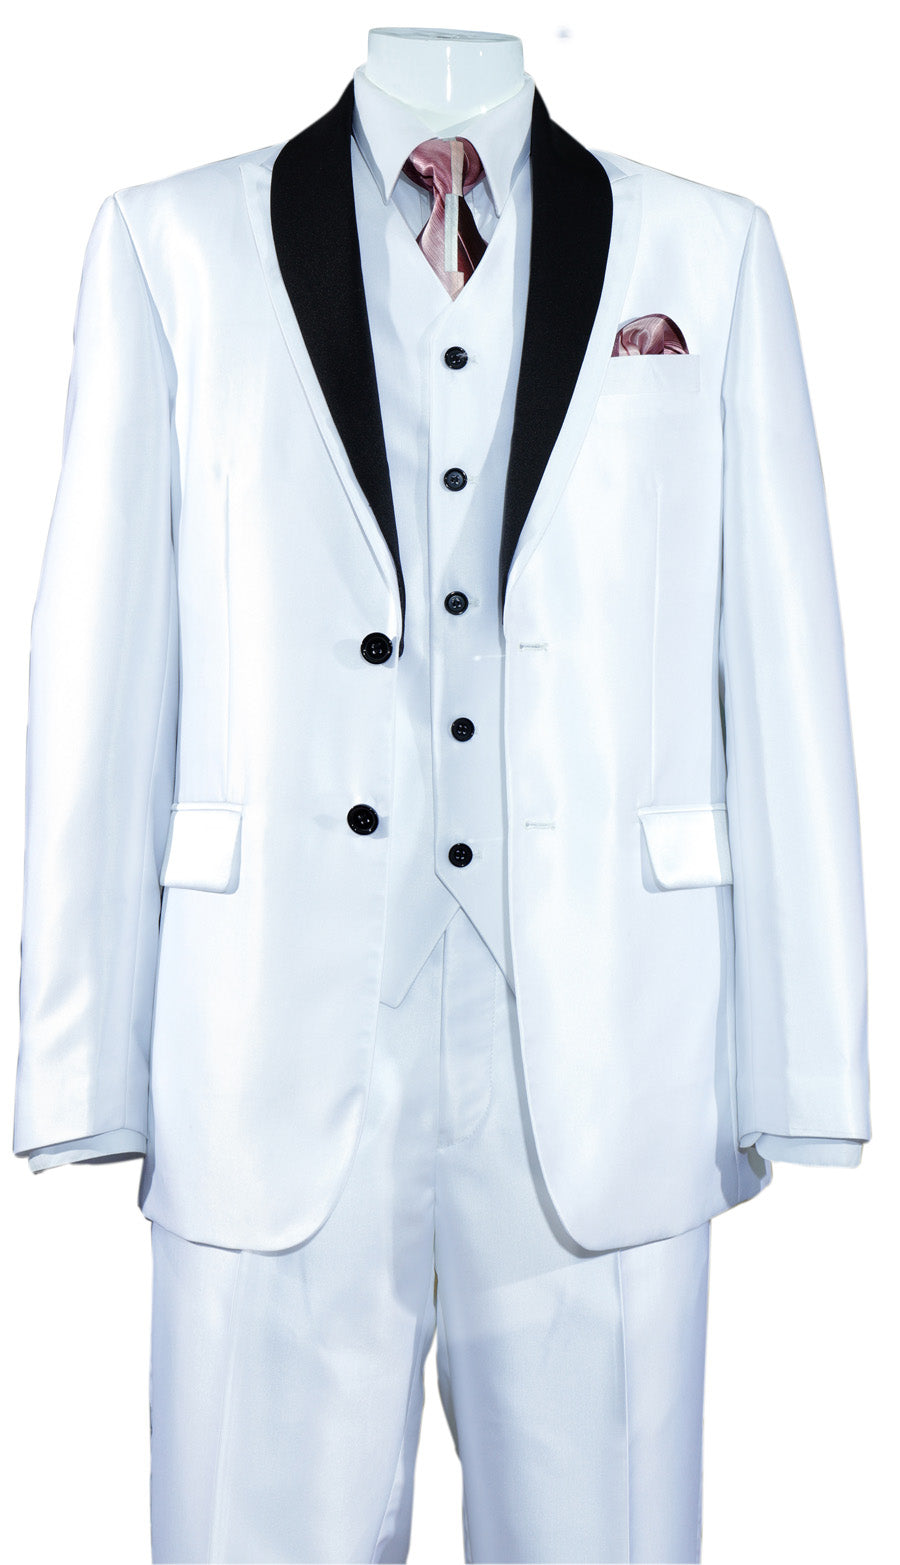 Fortino Landi Suit 5702V5-White - Church Suits For Less